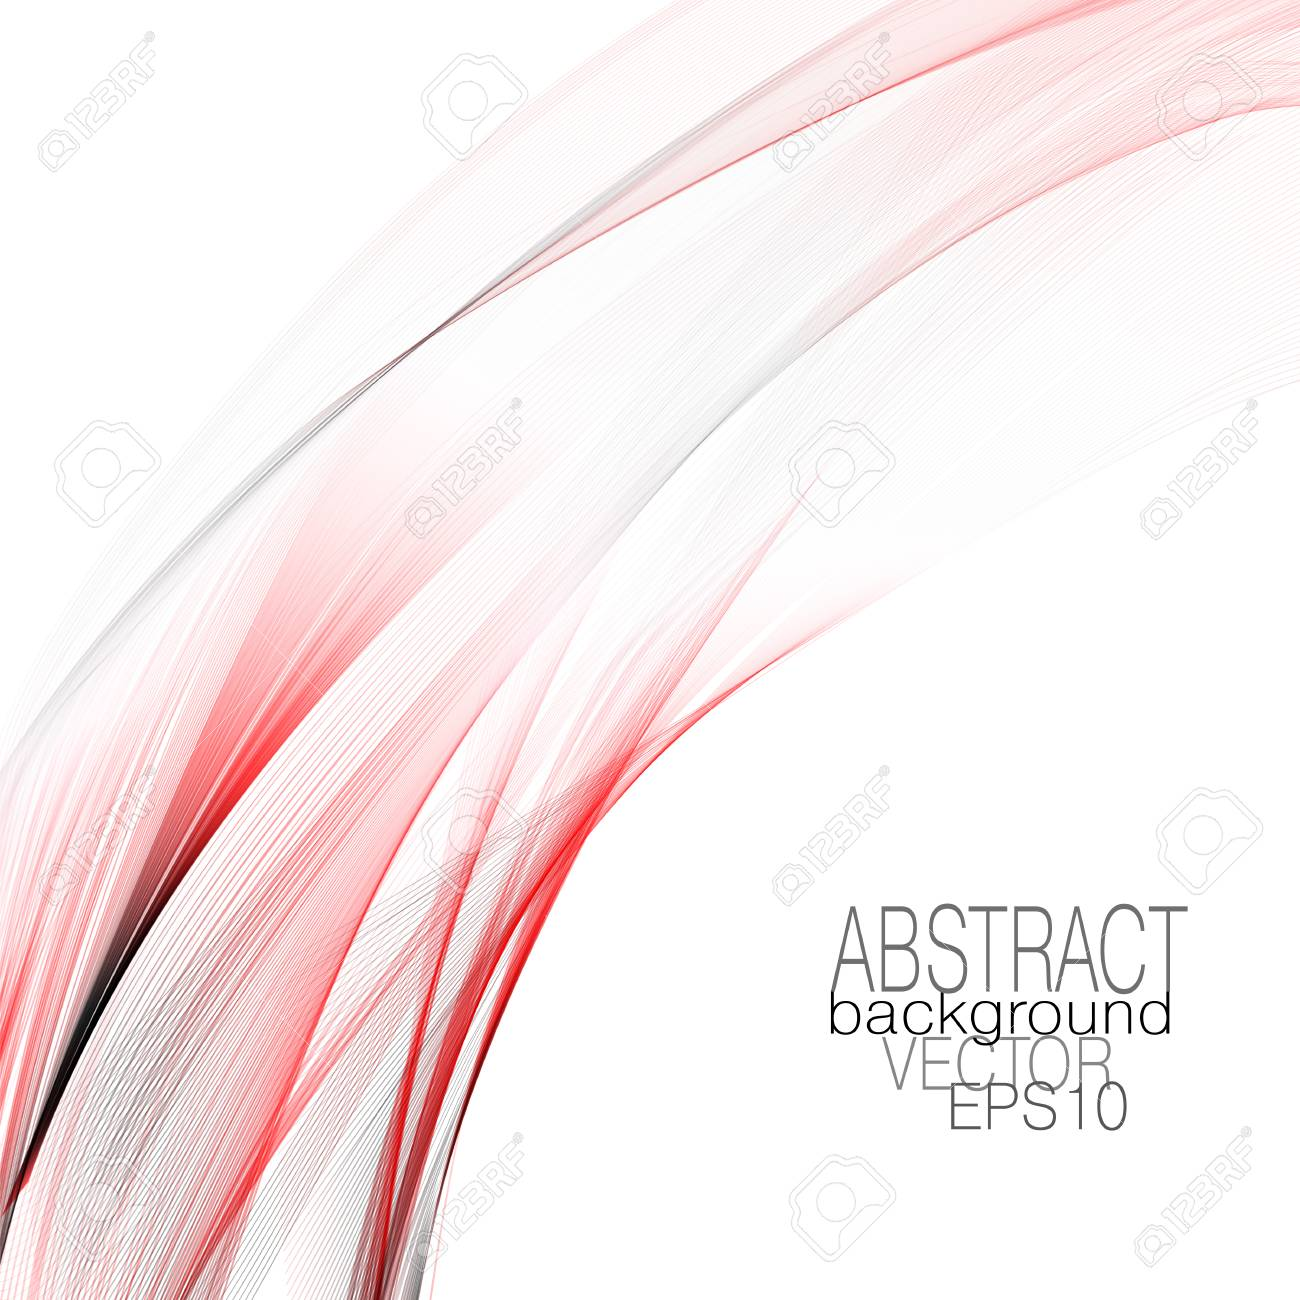 Art template with red, gray waving curved lines. Flowing veil imitation. Modern abstract design element. Vector colored lines background. Layout for brochure, book, cover, poster, leaflet, flyer, card. EPS10 illustration - 114054744